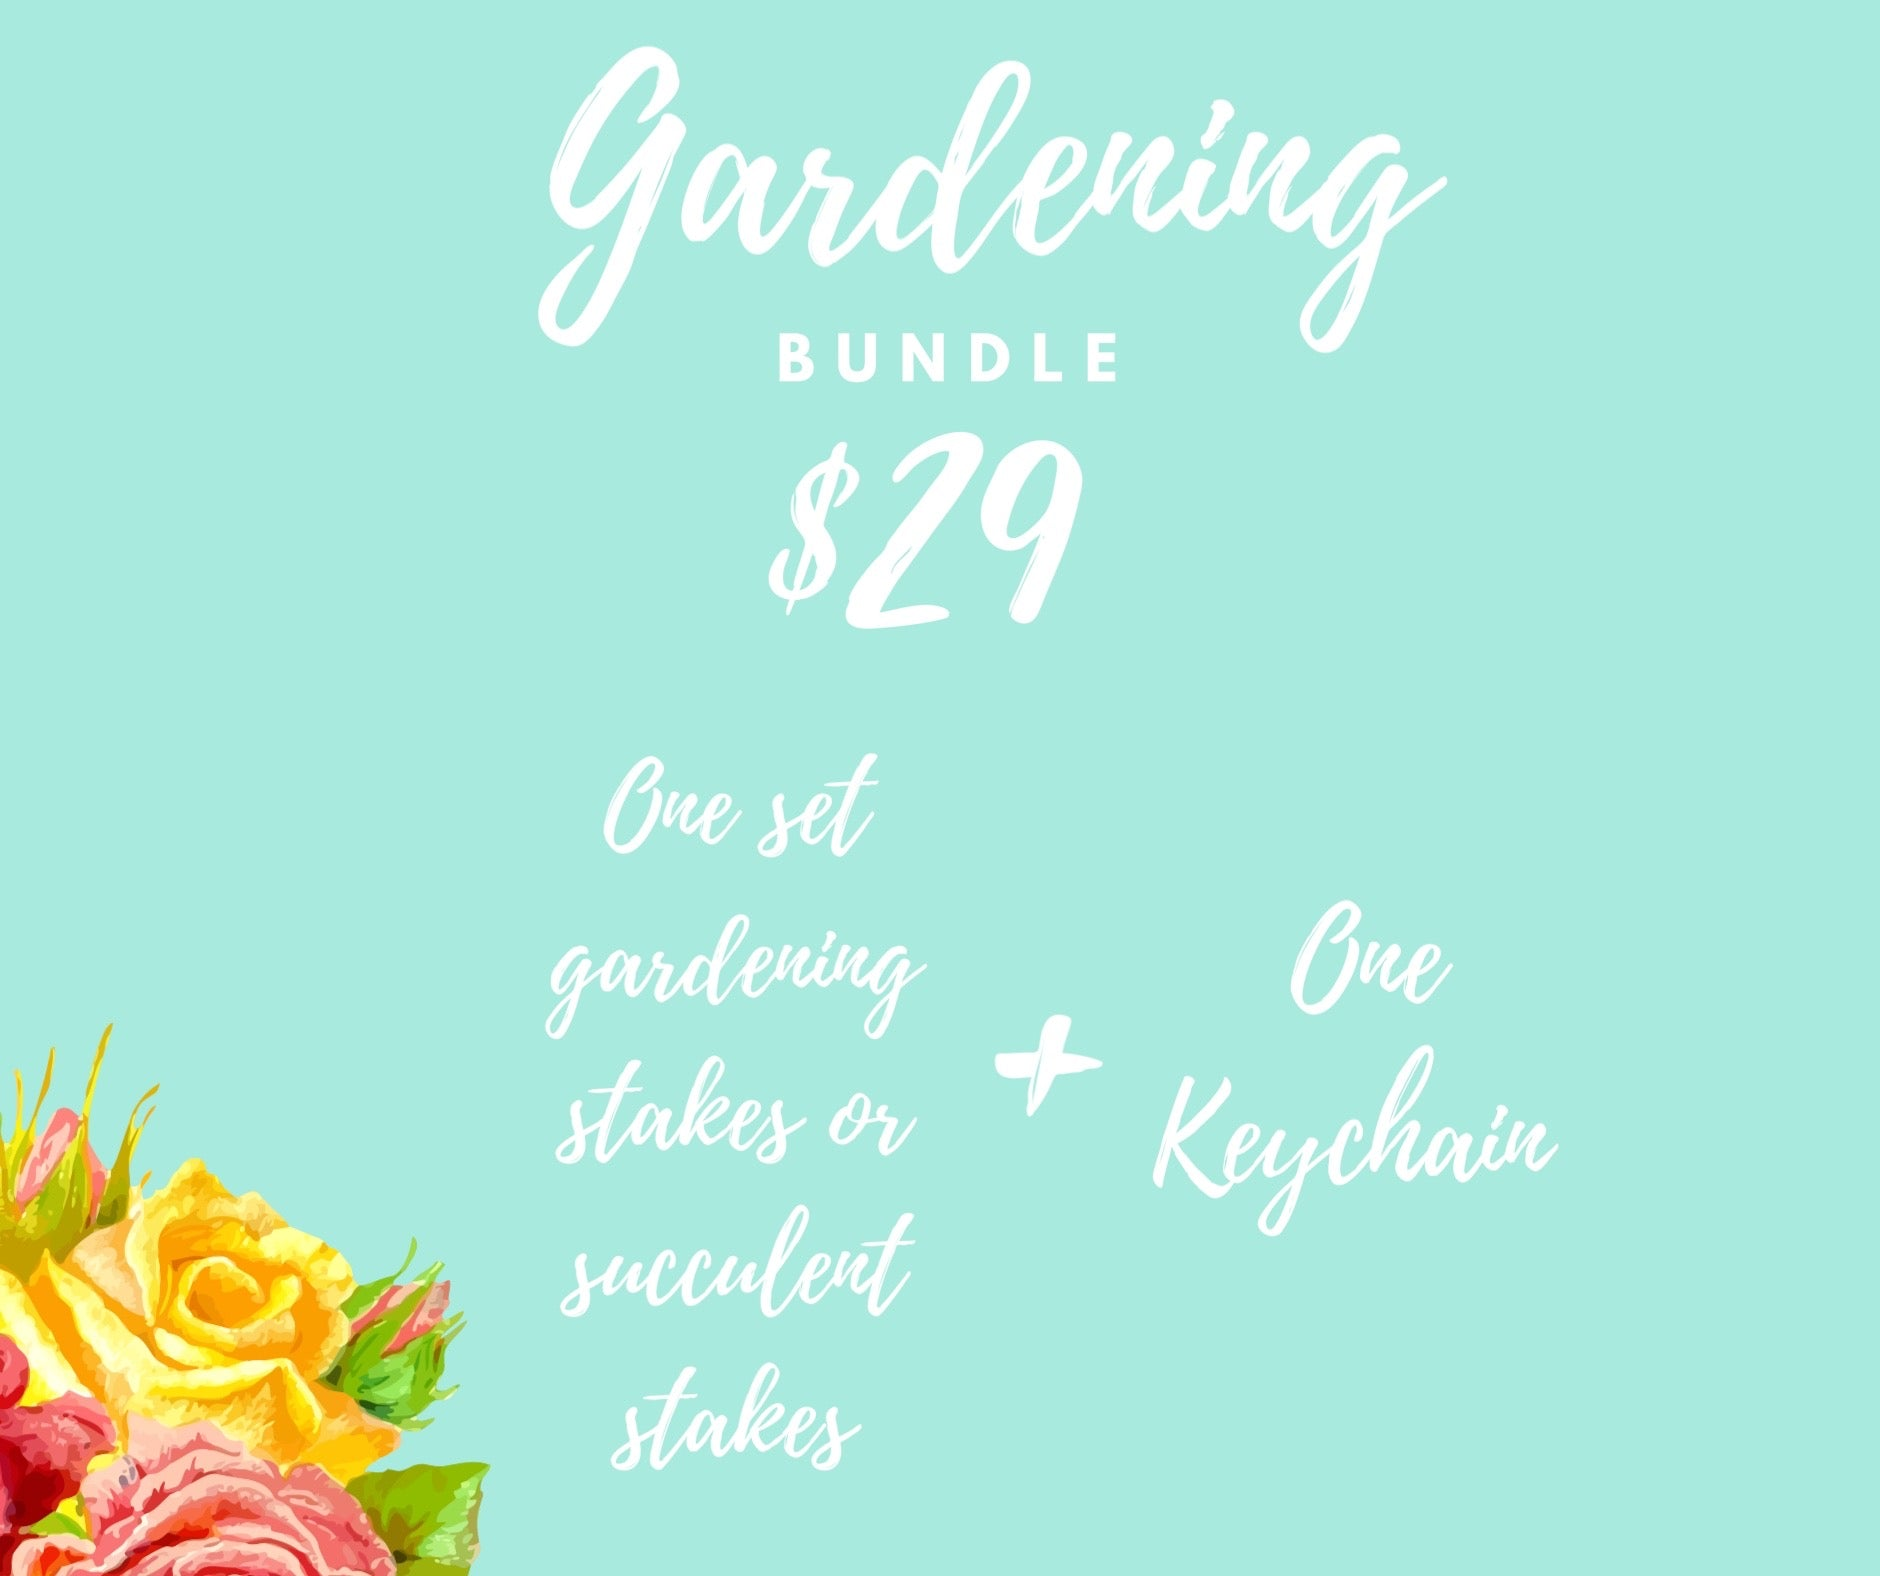 Mother's Day Gift Bundle - Gardening Mom Bundle